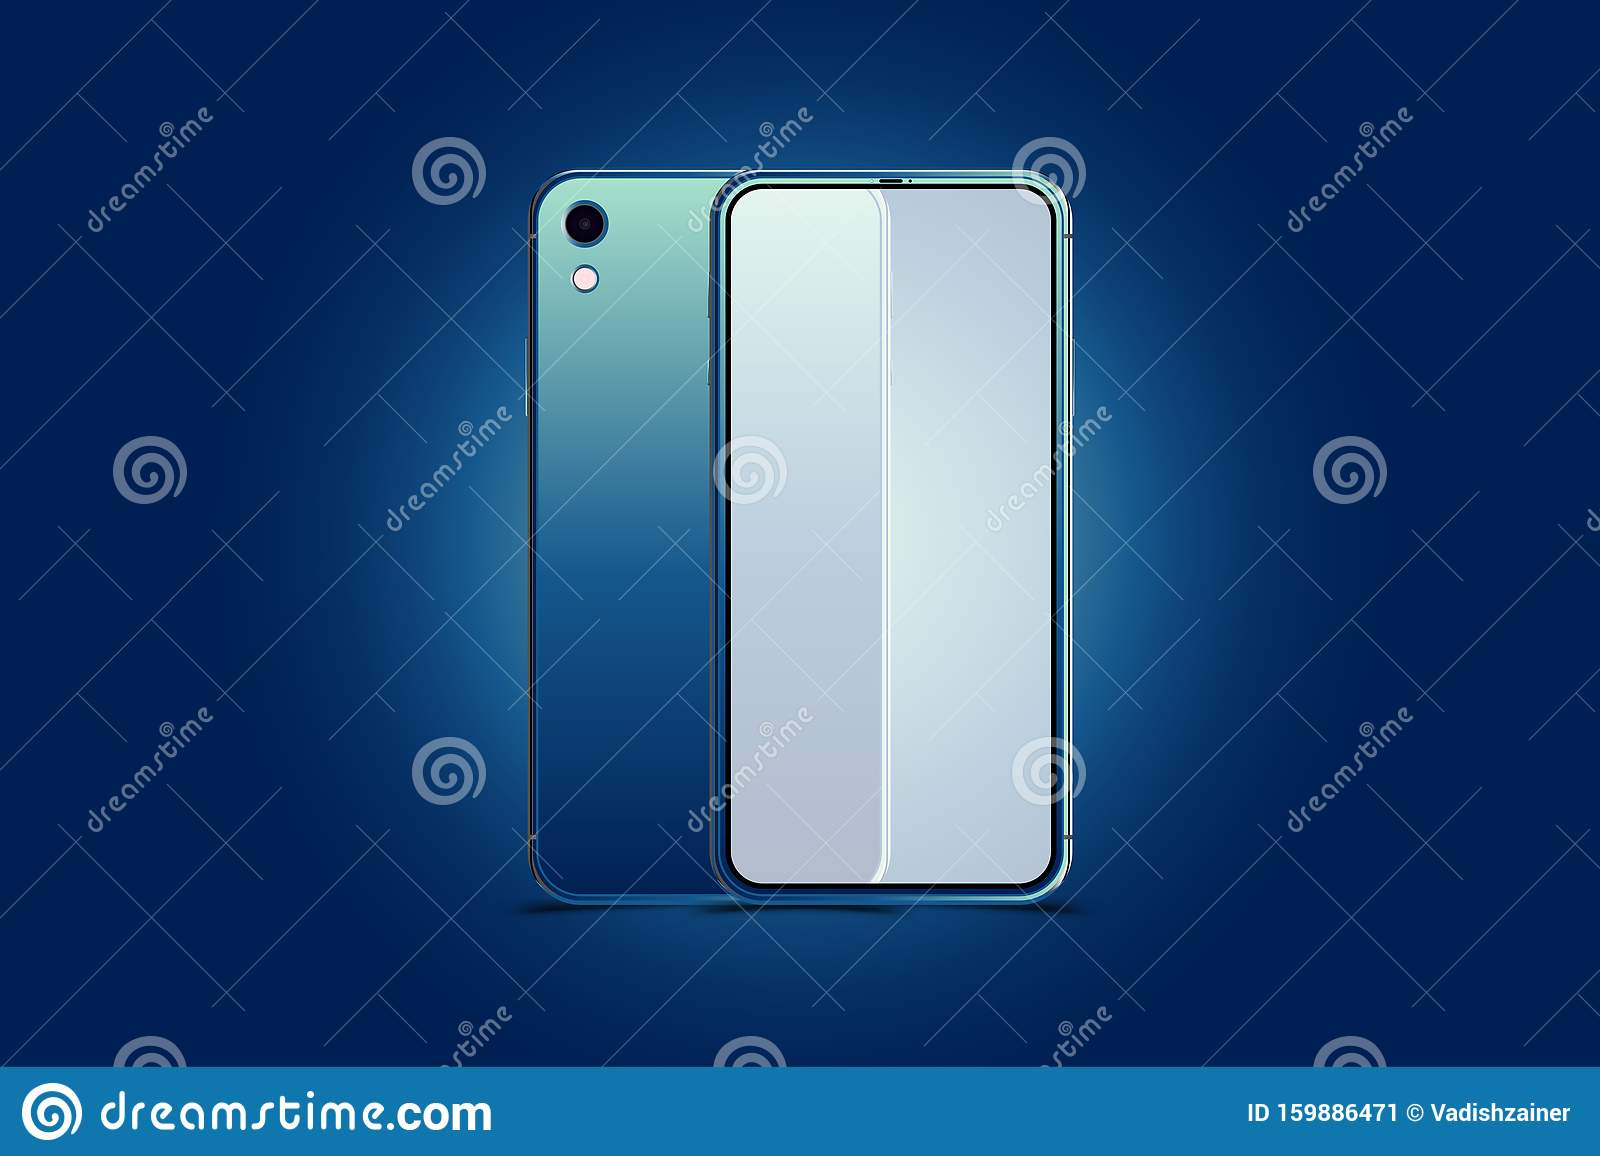 Mock Up Of Realistic Smartphones New Generation Phone In Blue Colour Front Side With Screen And Back Side With Camera Isolated Stock Illustration Illustration Of Dark Business 159886471